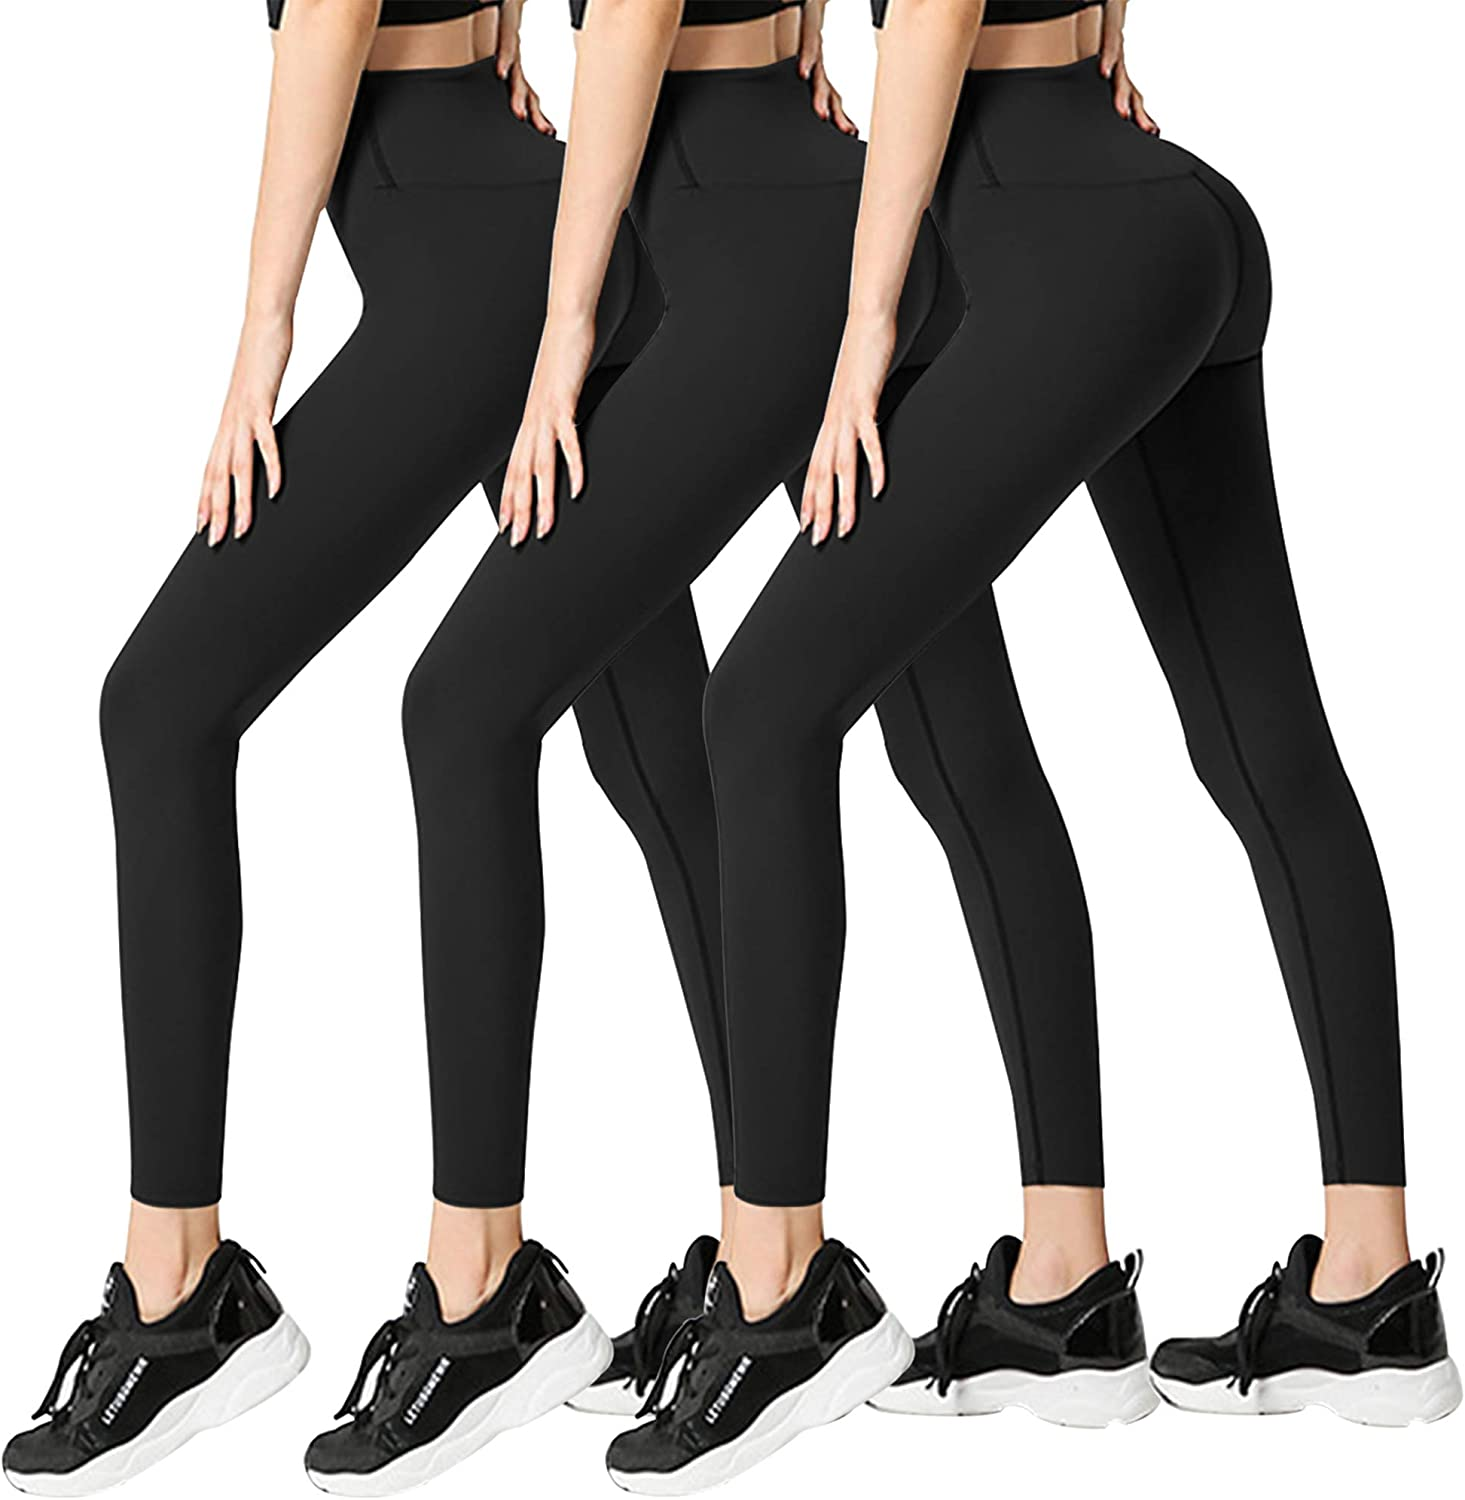 3 Pack Womens Leggings-No See-Through High Waisted Tummy Control Yoga Pants Workout Running Legging-Reg&Plus Size: Clothing